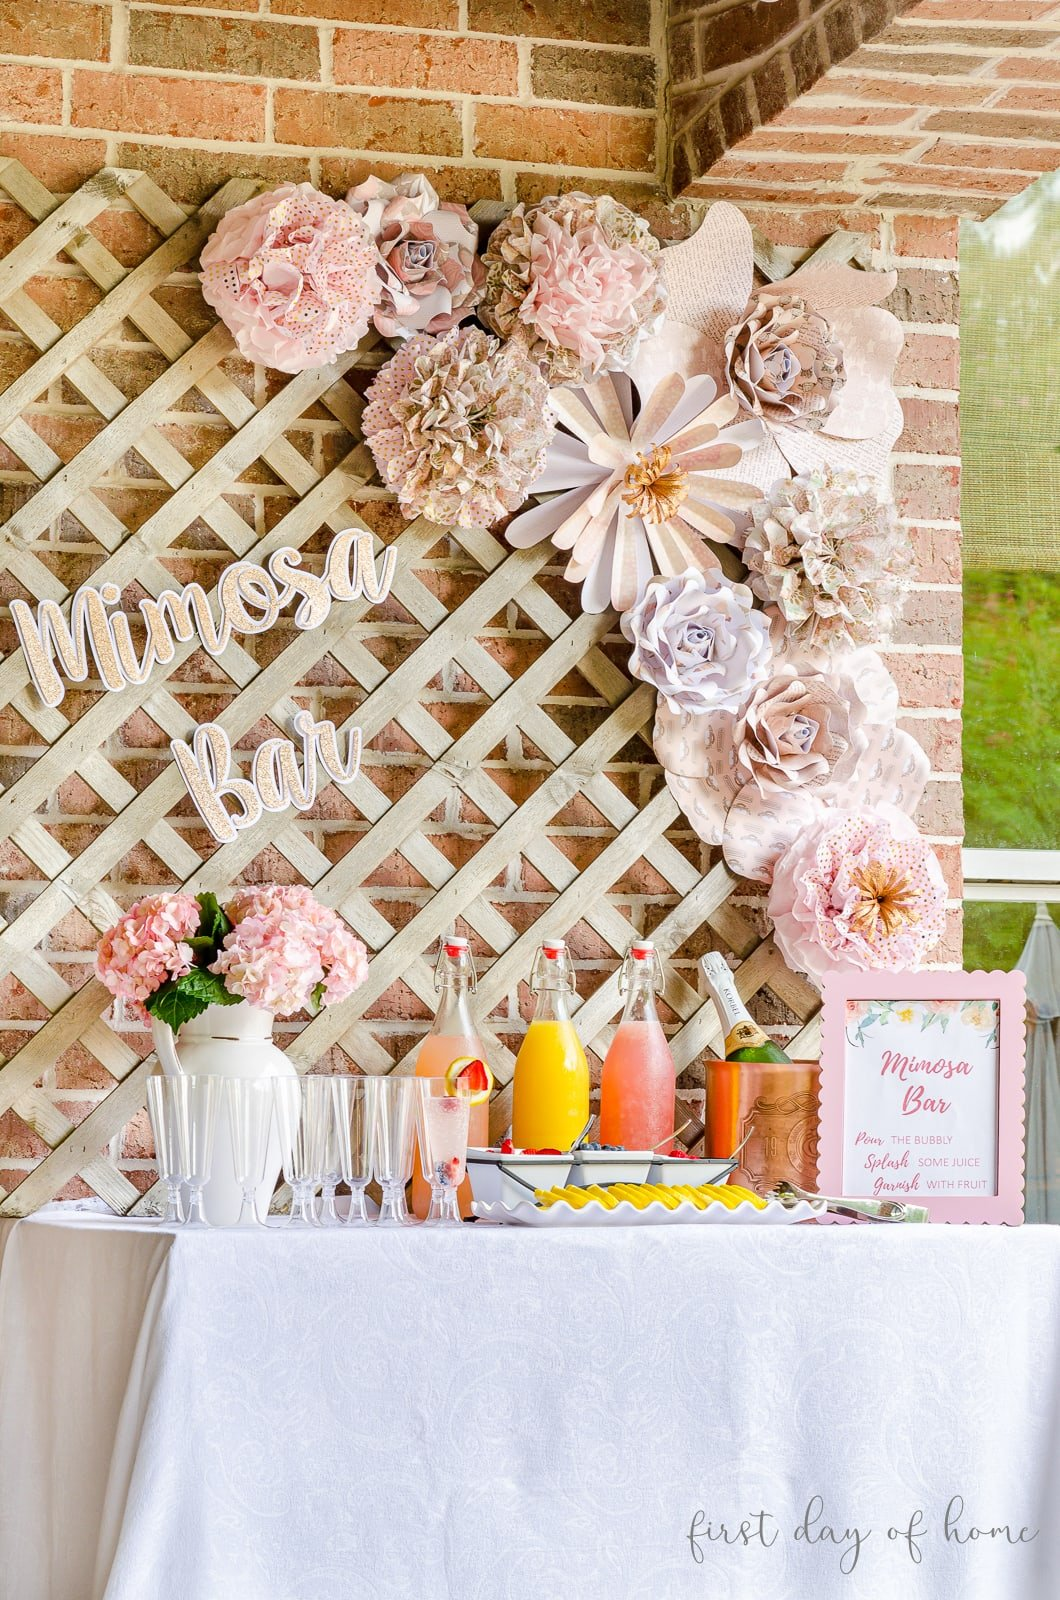 Mimosa bar sign with tissue paper pom poms and paper flowers on lattice behind DIY mimosa bar with fruit juices, champagne and garnishes